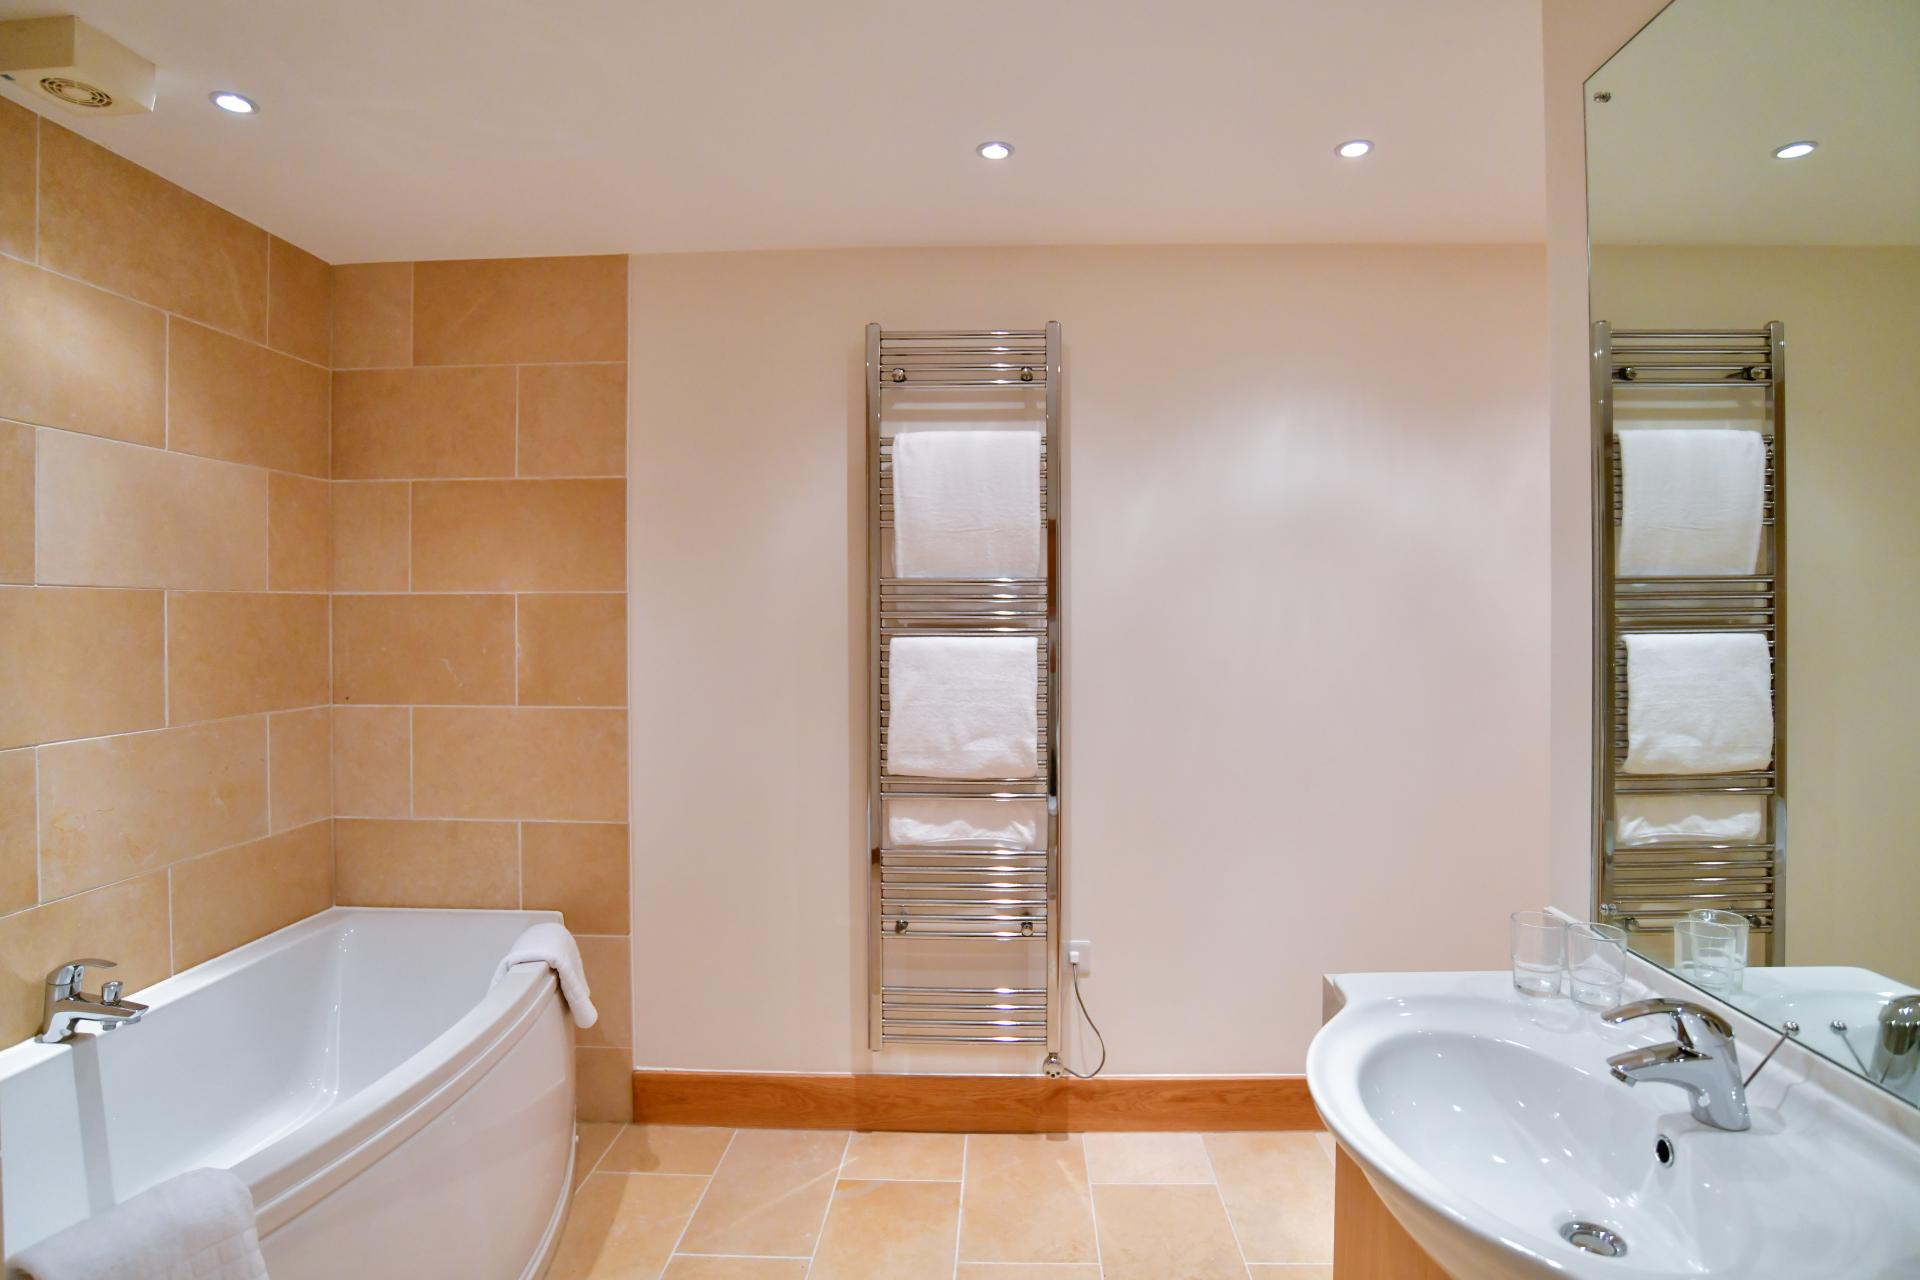 Bathroom 1 at Meridian Quay Penthouses, Maritime Quarter, Swansea - Citybase Apartments